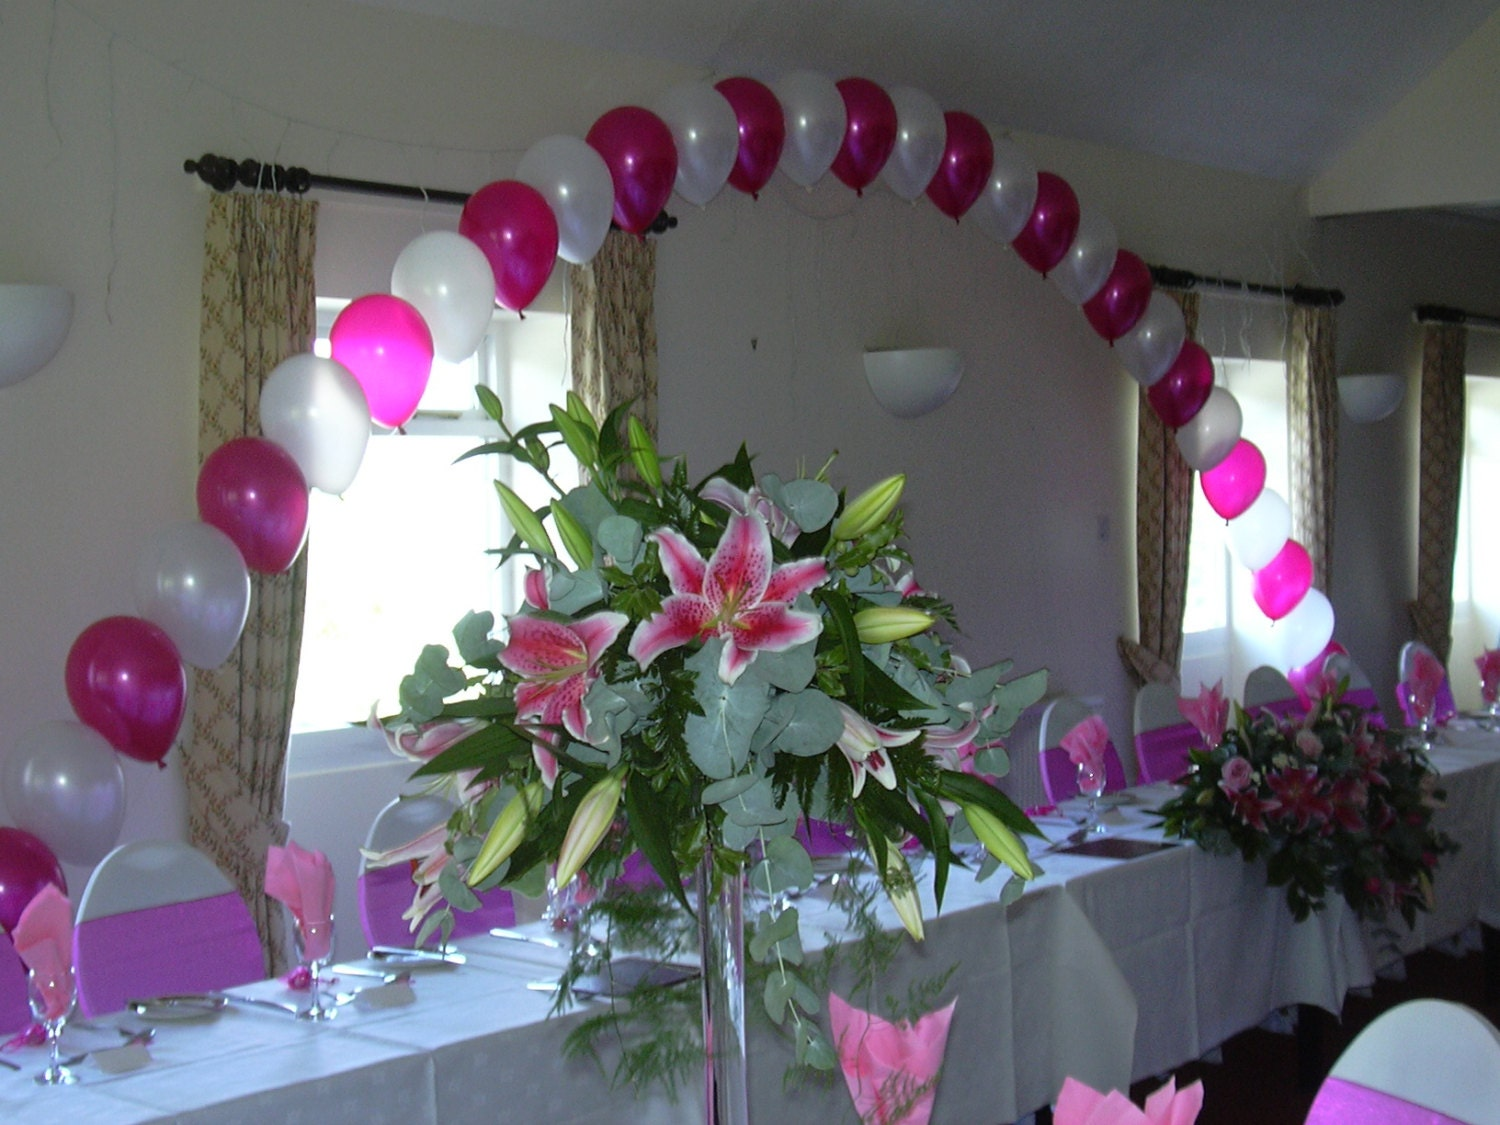 Large diy balloon arch kit for wedding or party decoration